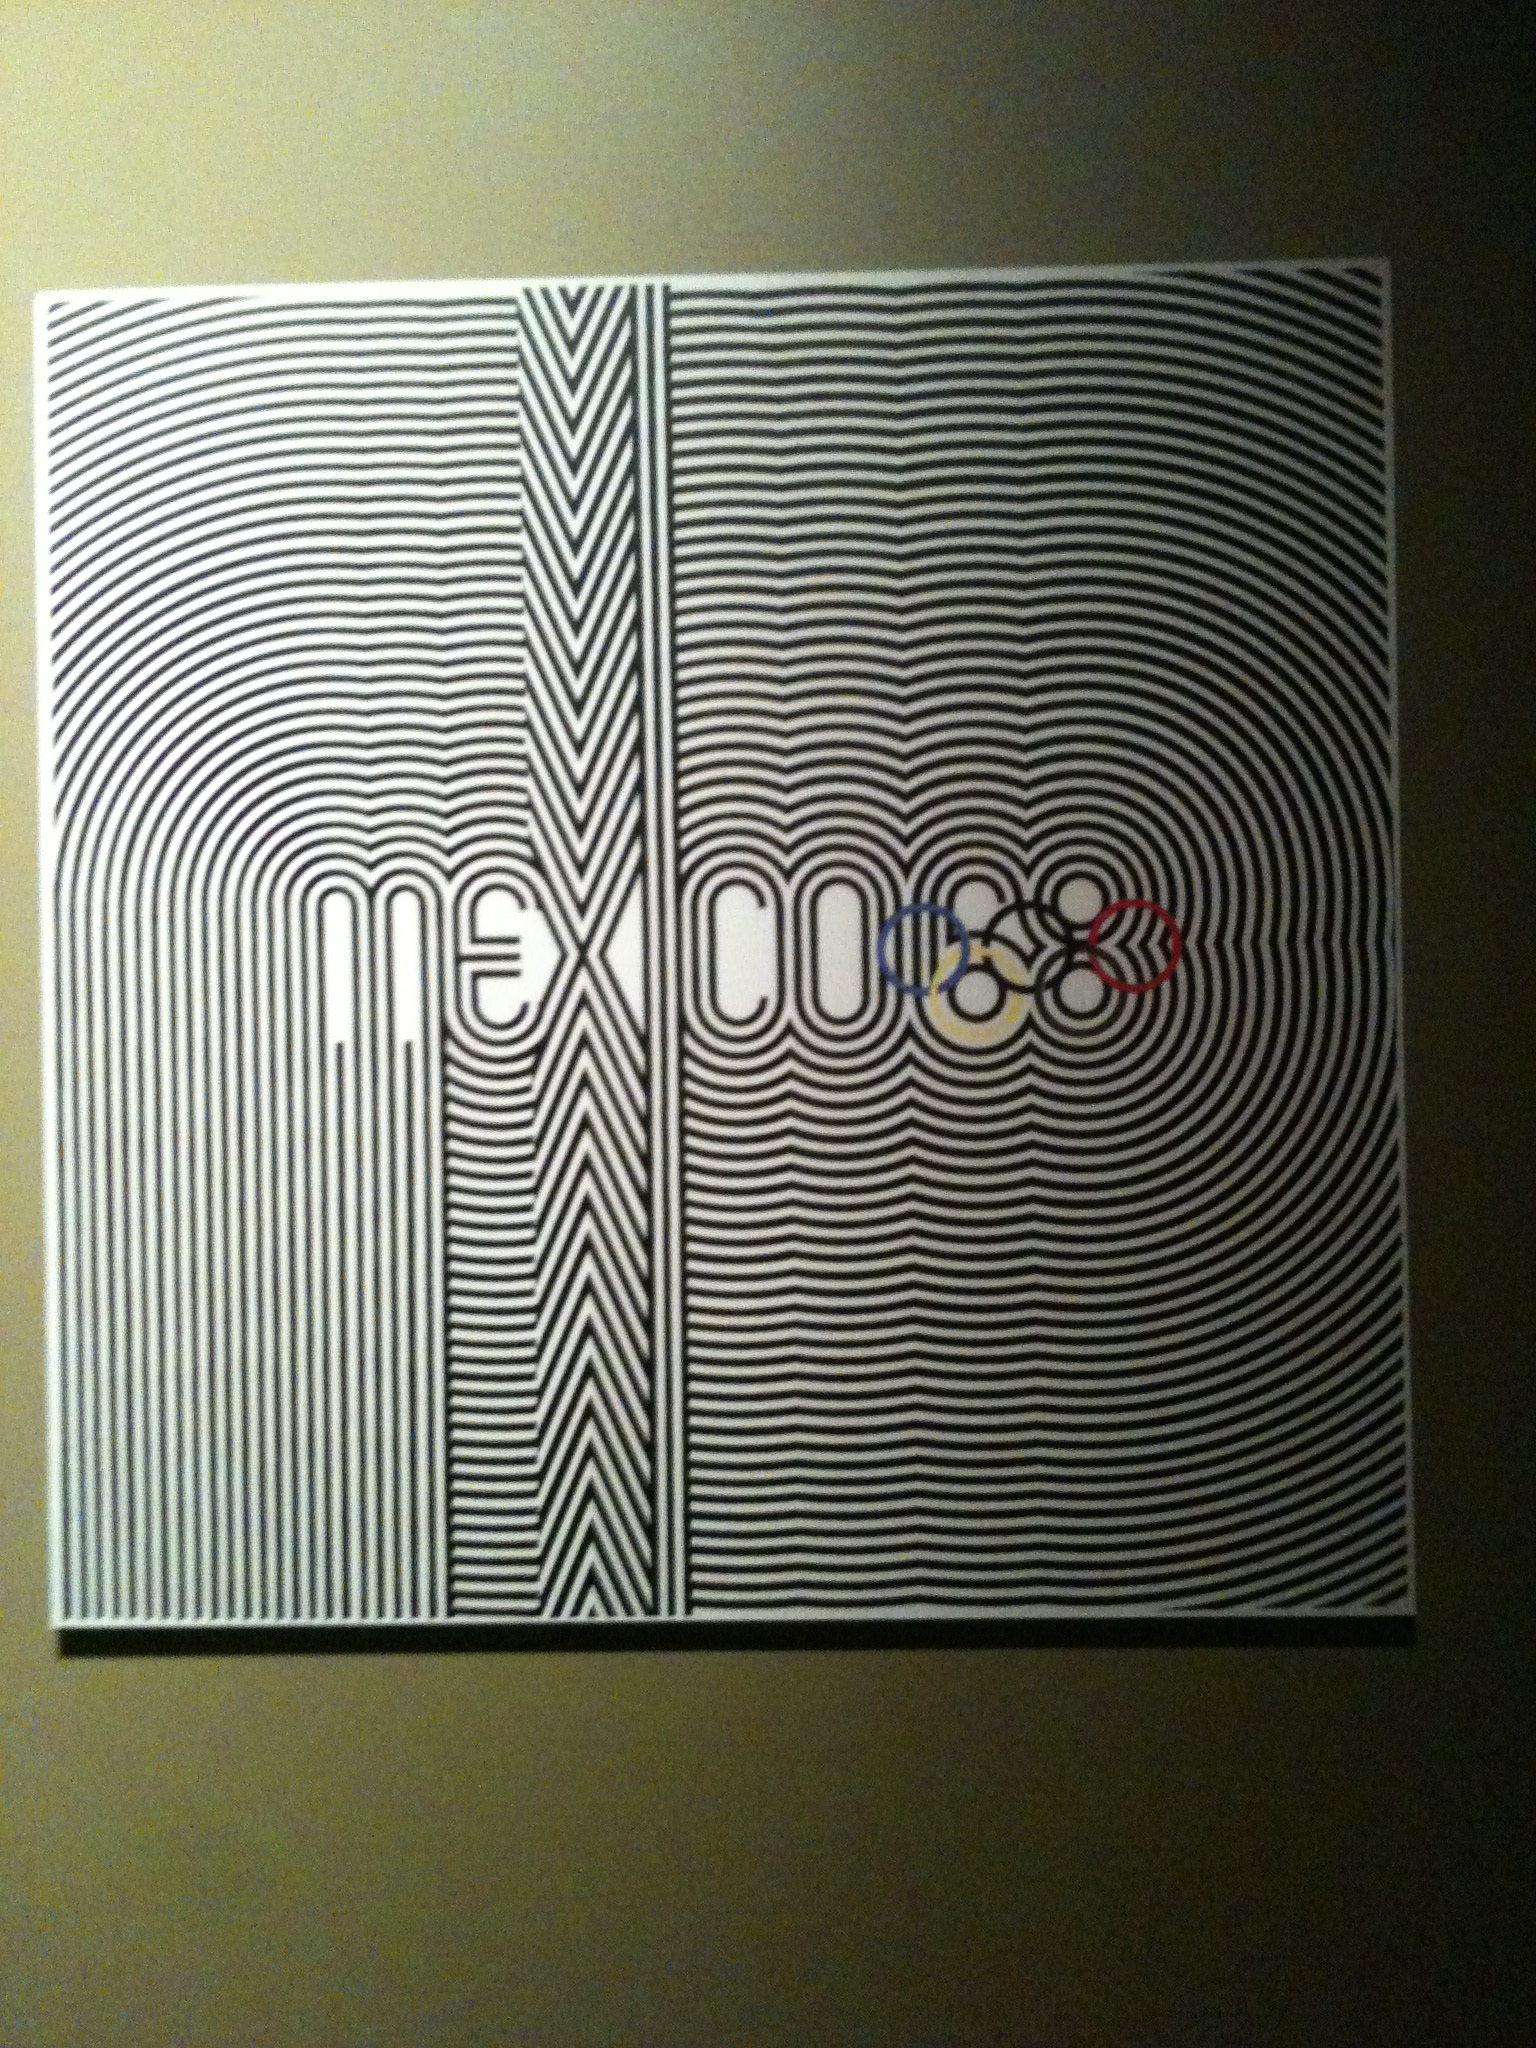 Poster for 1968 Olympics in Mexico, on view in commemorative exhibition at UNAM art museum in Tlateloco